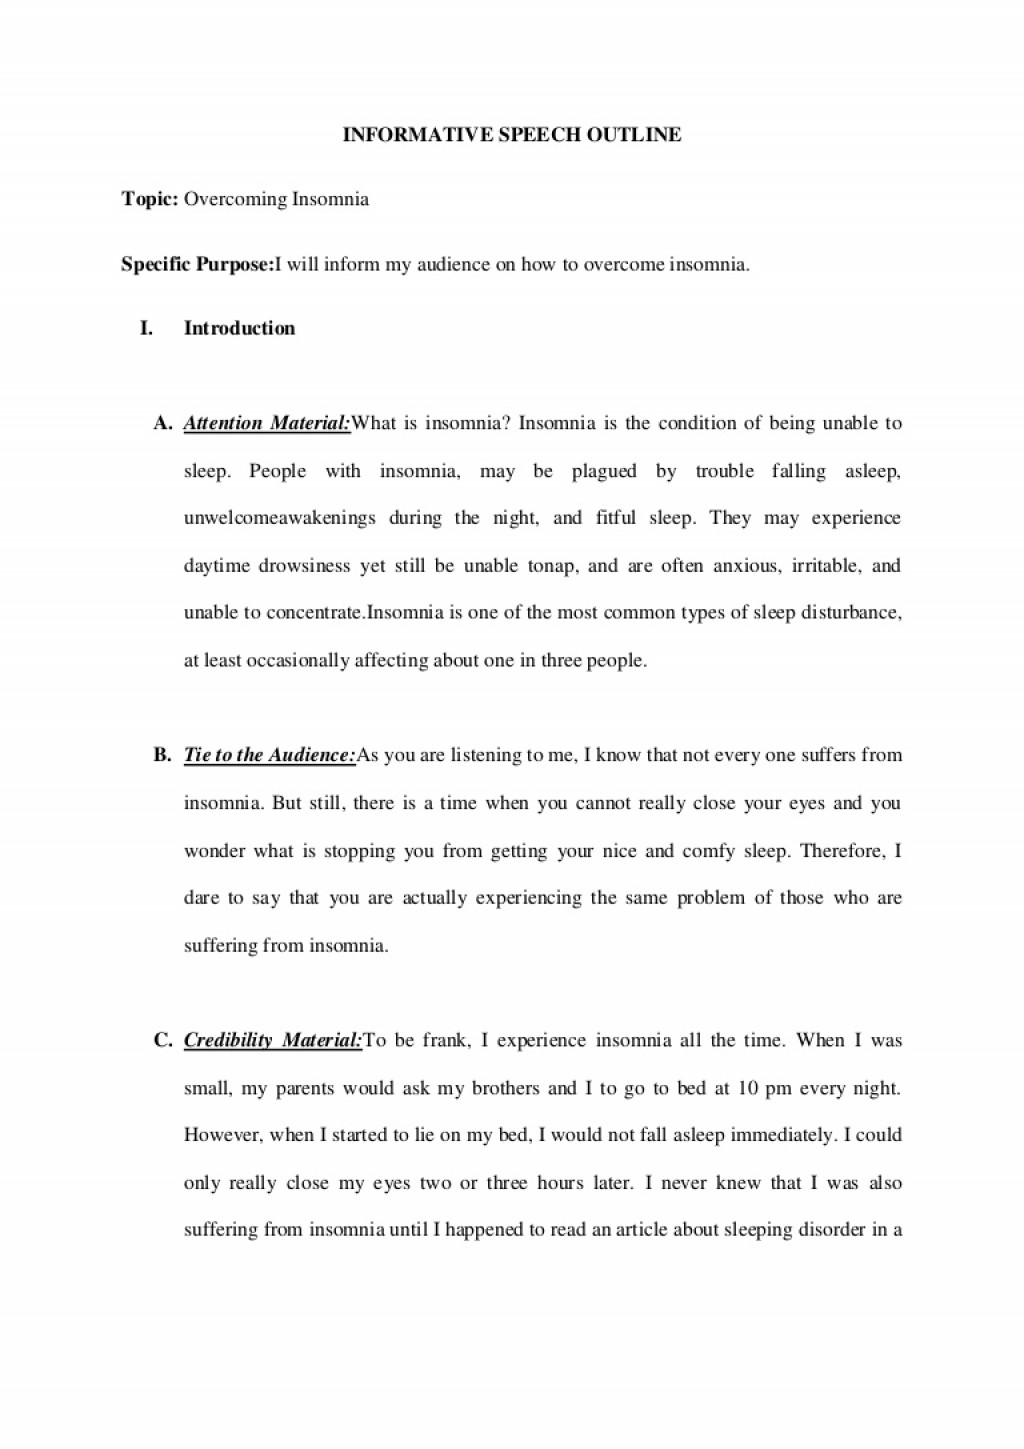 015 Essay Example Informational Format Informativespeechoutlineovercomeinsomnia Phpapp02 Thumbnail Top Interview Explanatory Guidelines Quote Large